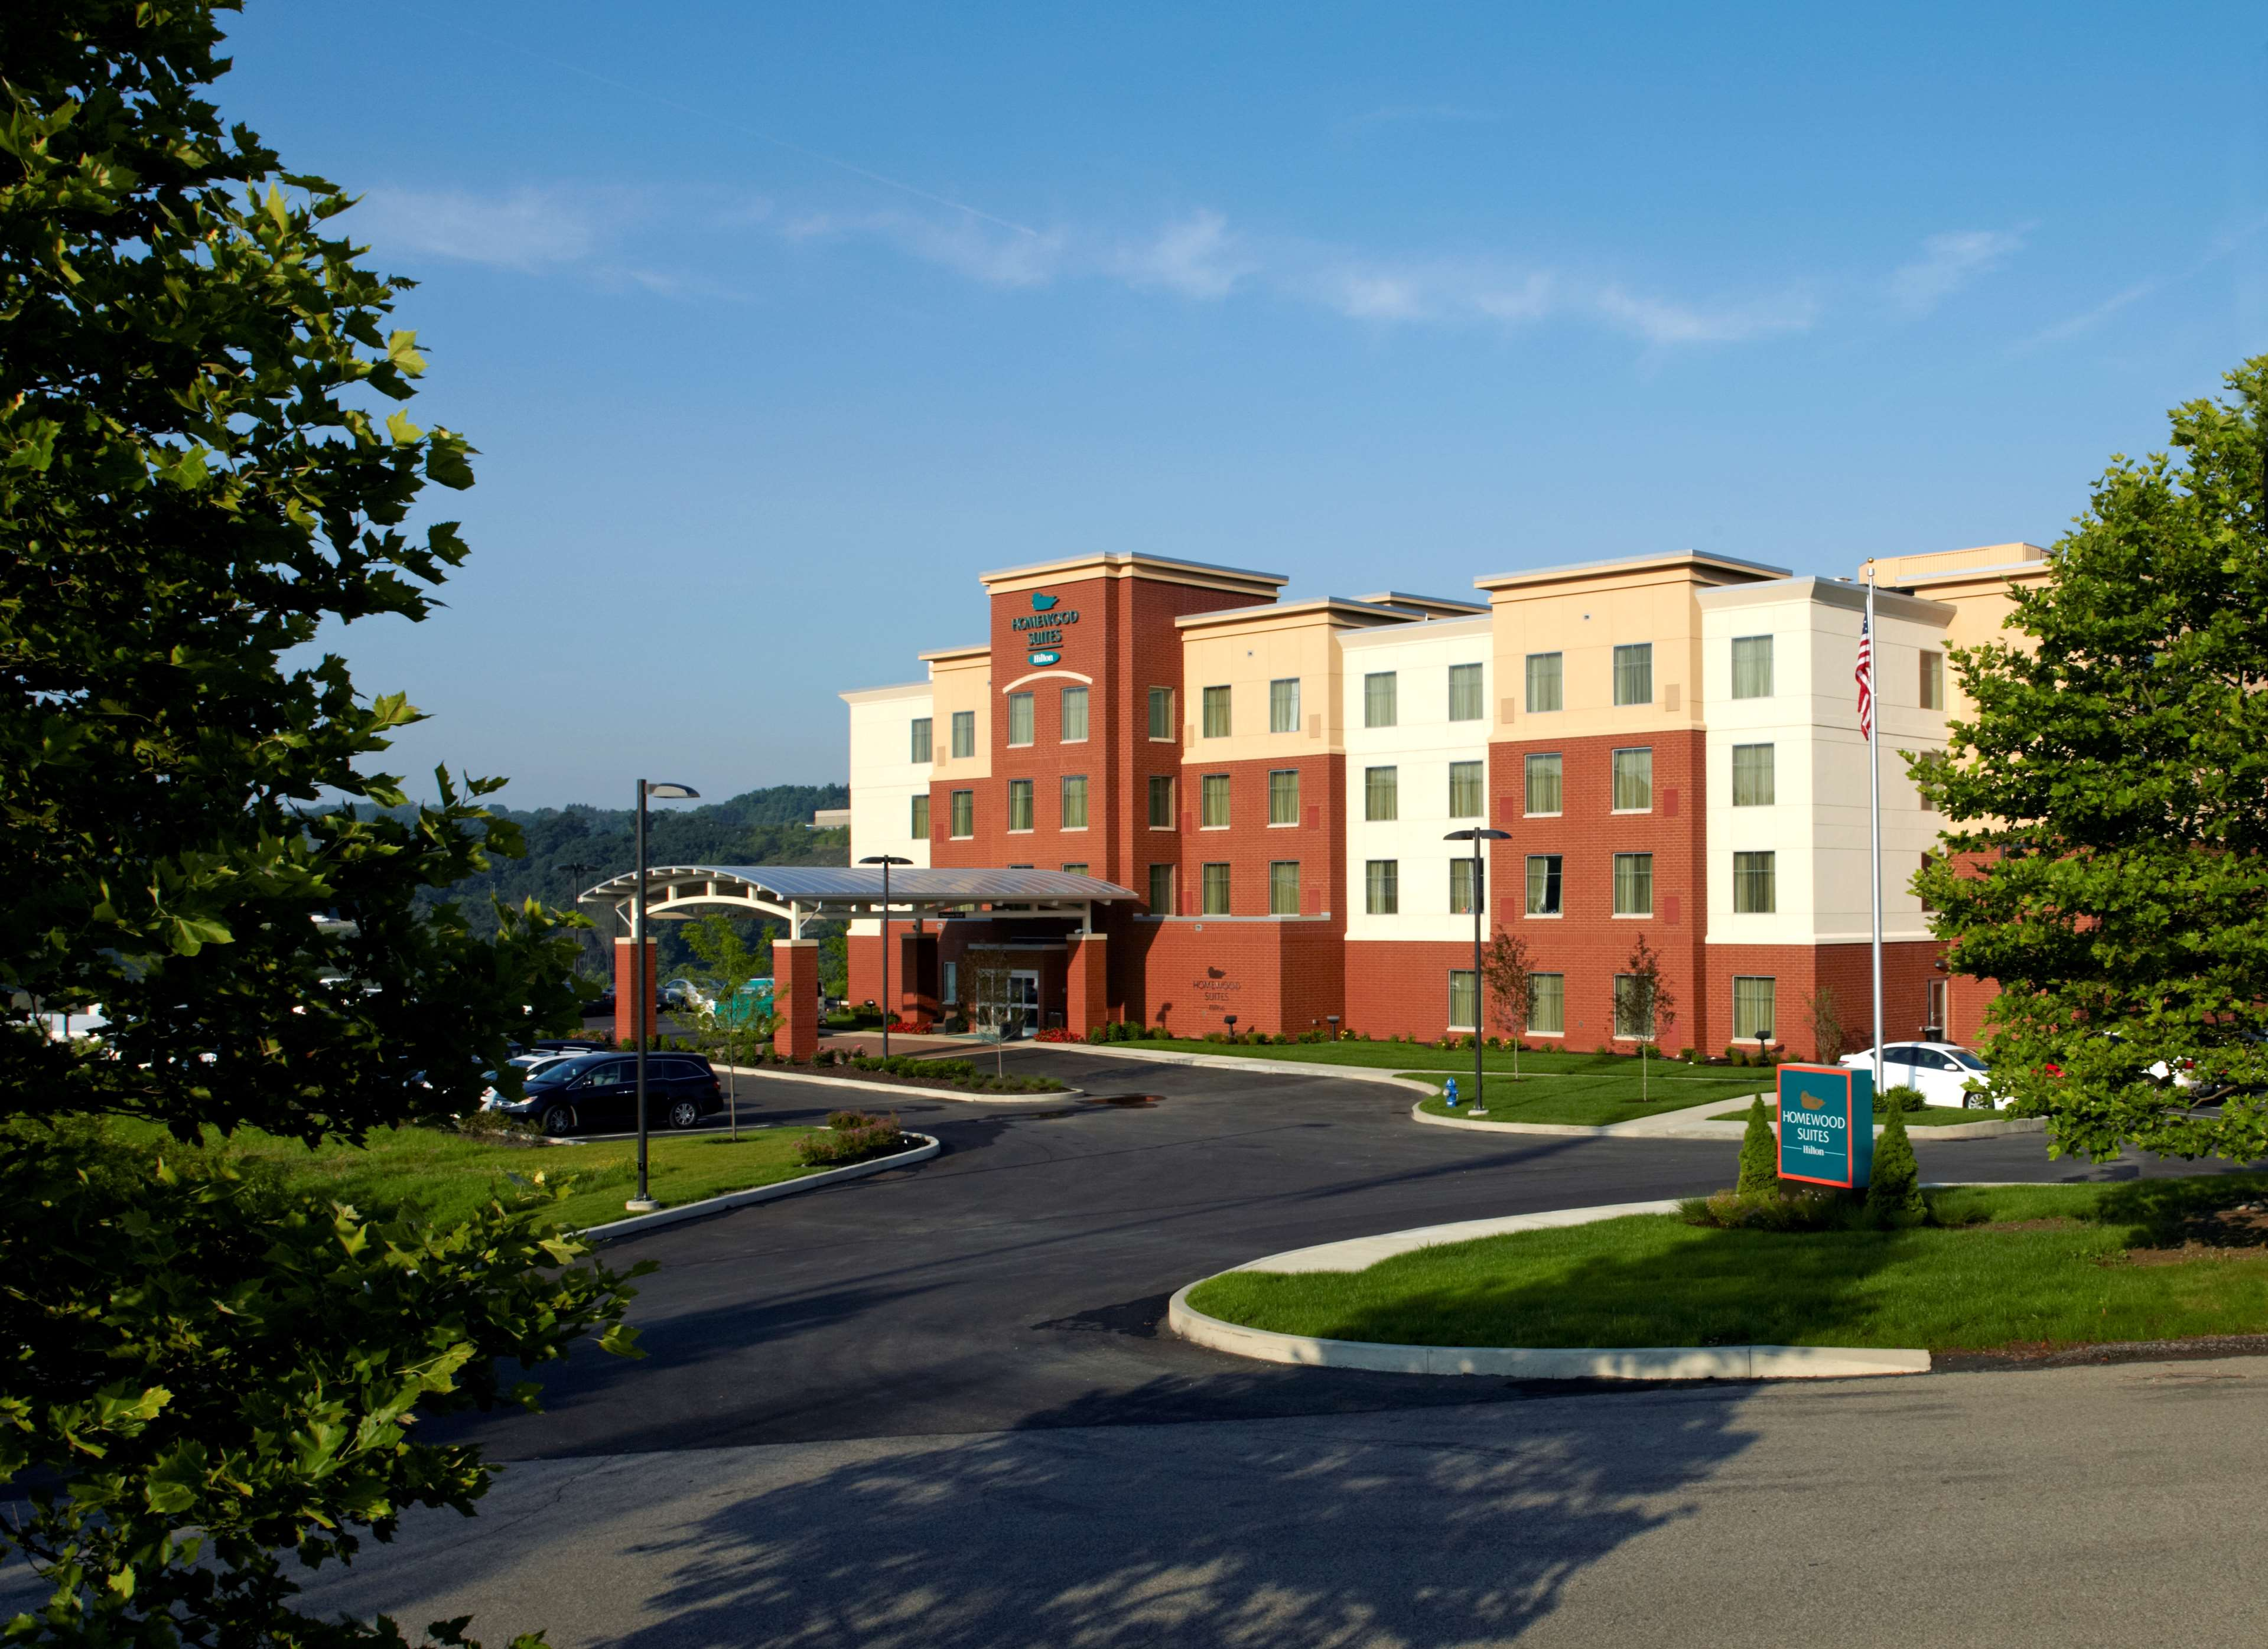 Homewood Suites by Hilton Pittsburgh Airport Robinson Mall Area PA image 1